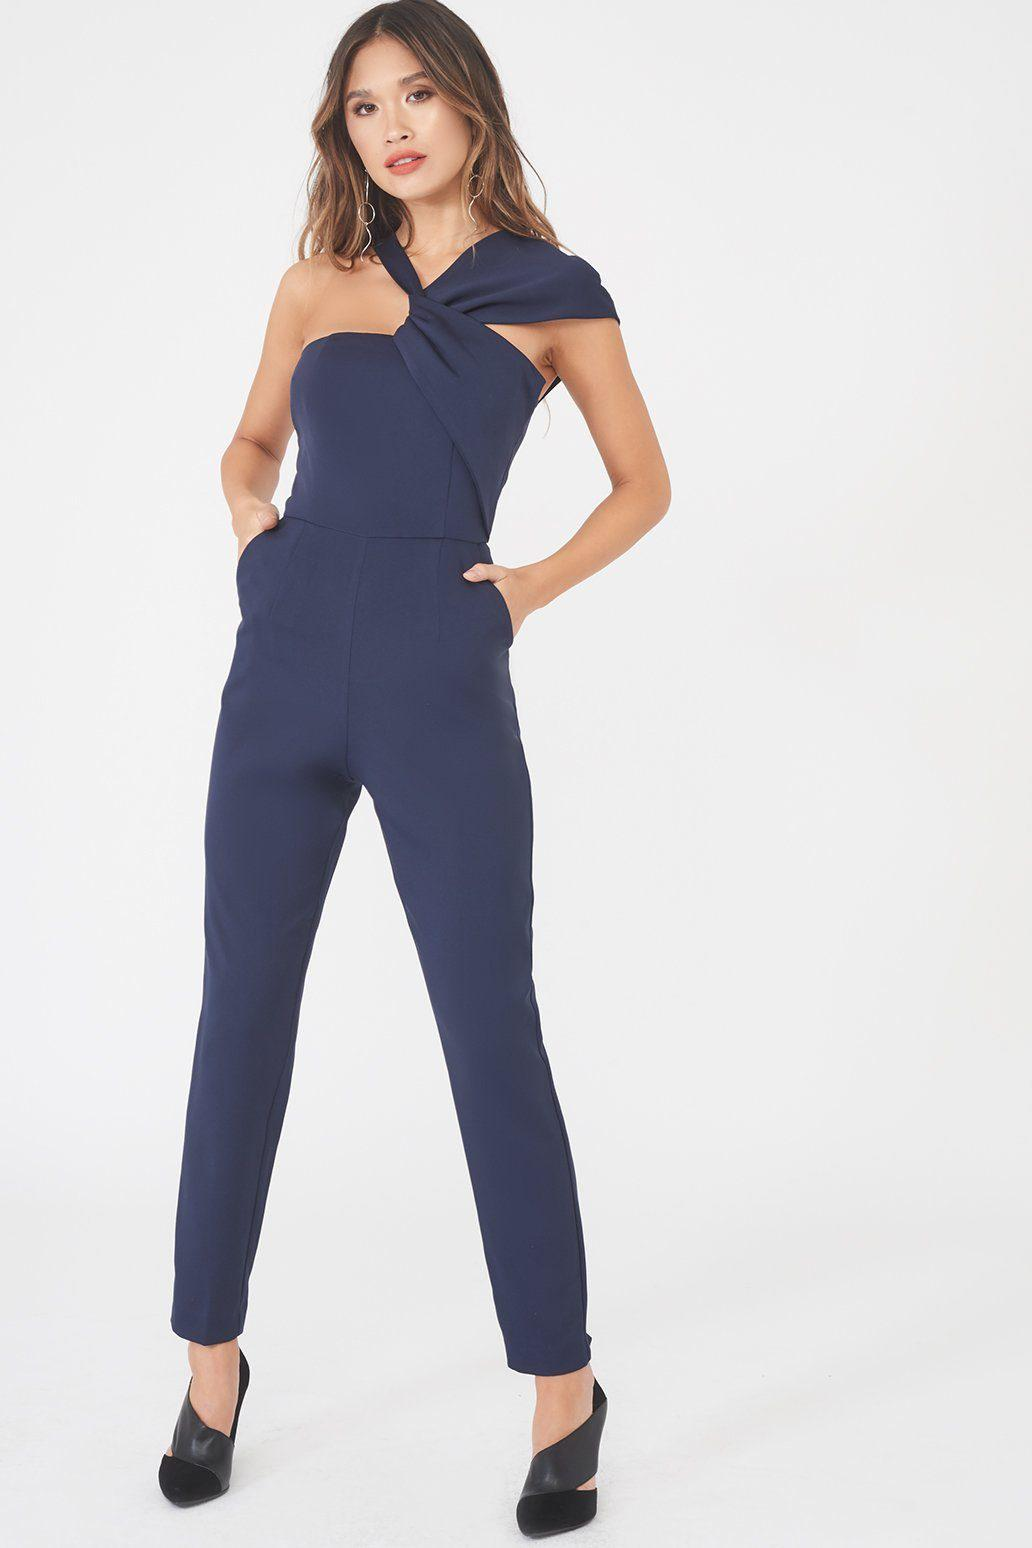 c76cd21ebe7 Lyst - Lavish Alice Asymmetric Twist Detail Tapered Jumpsuit In Navy ...